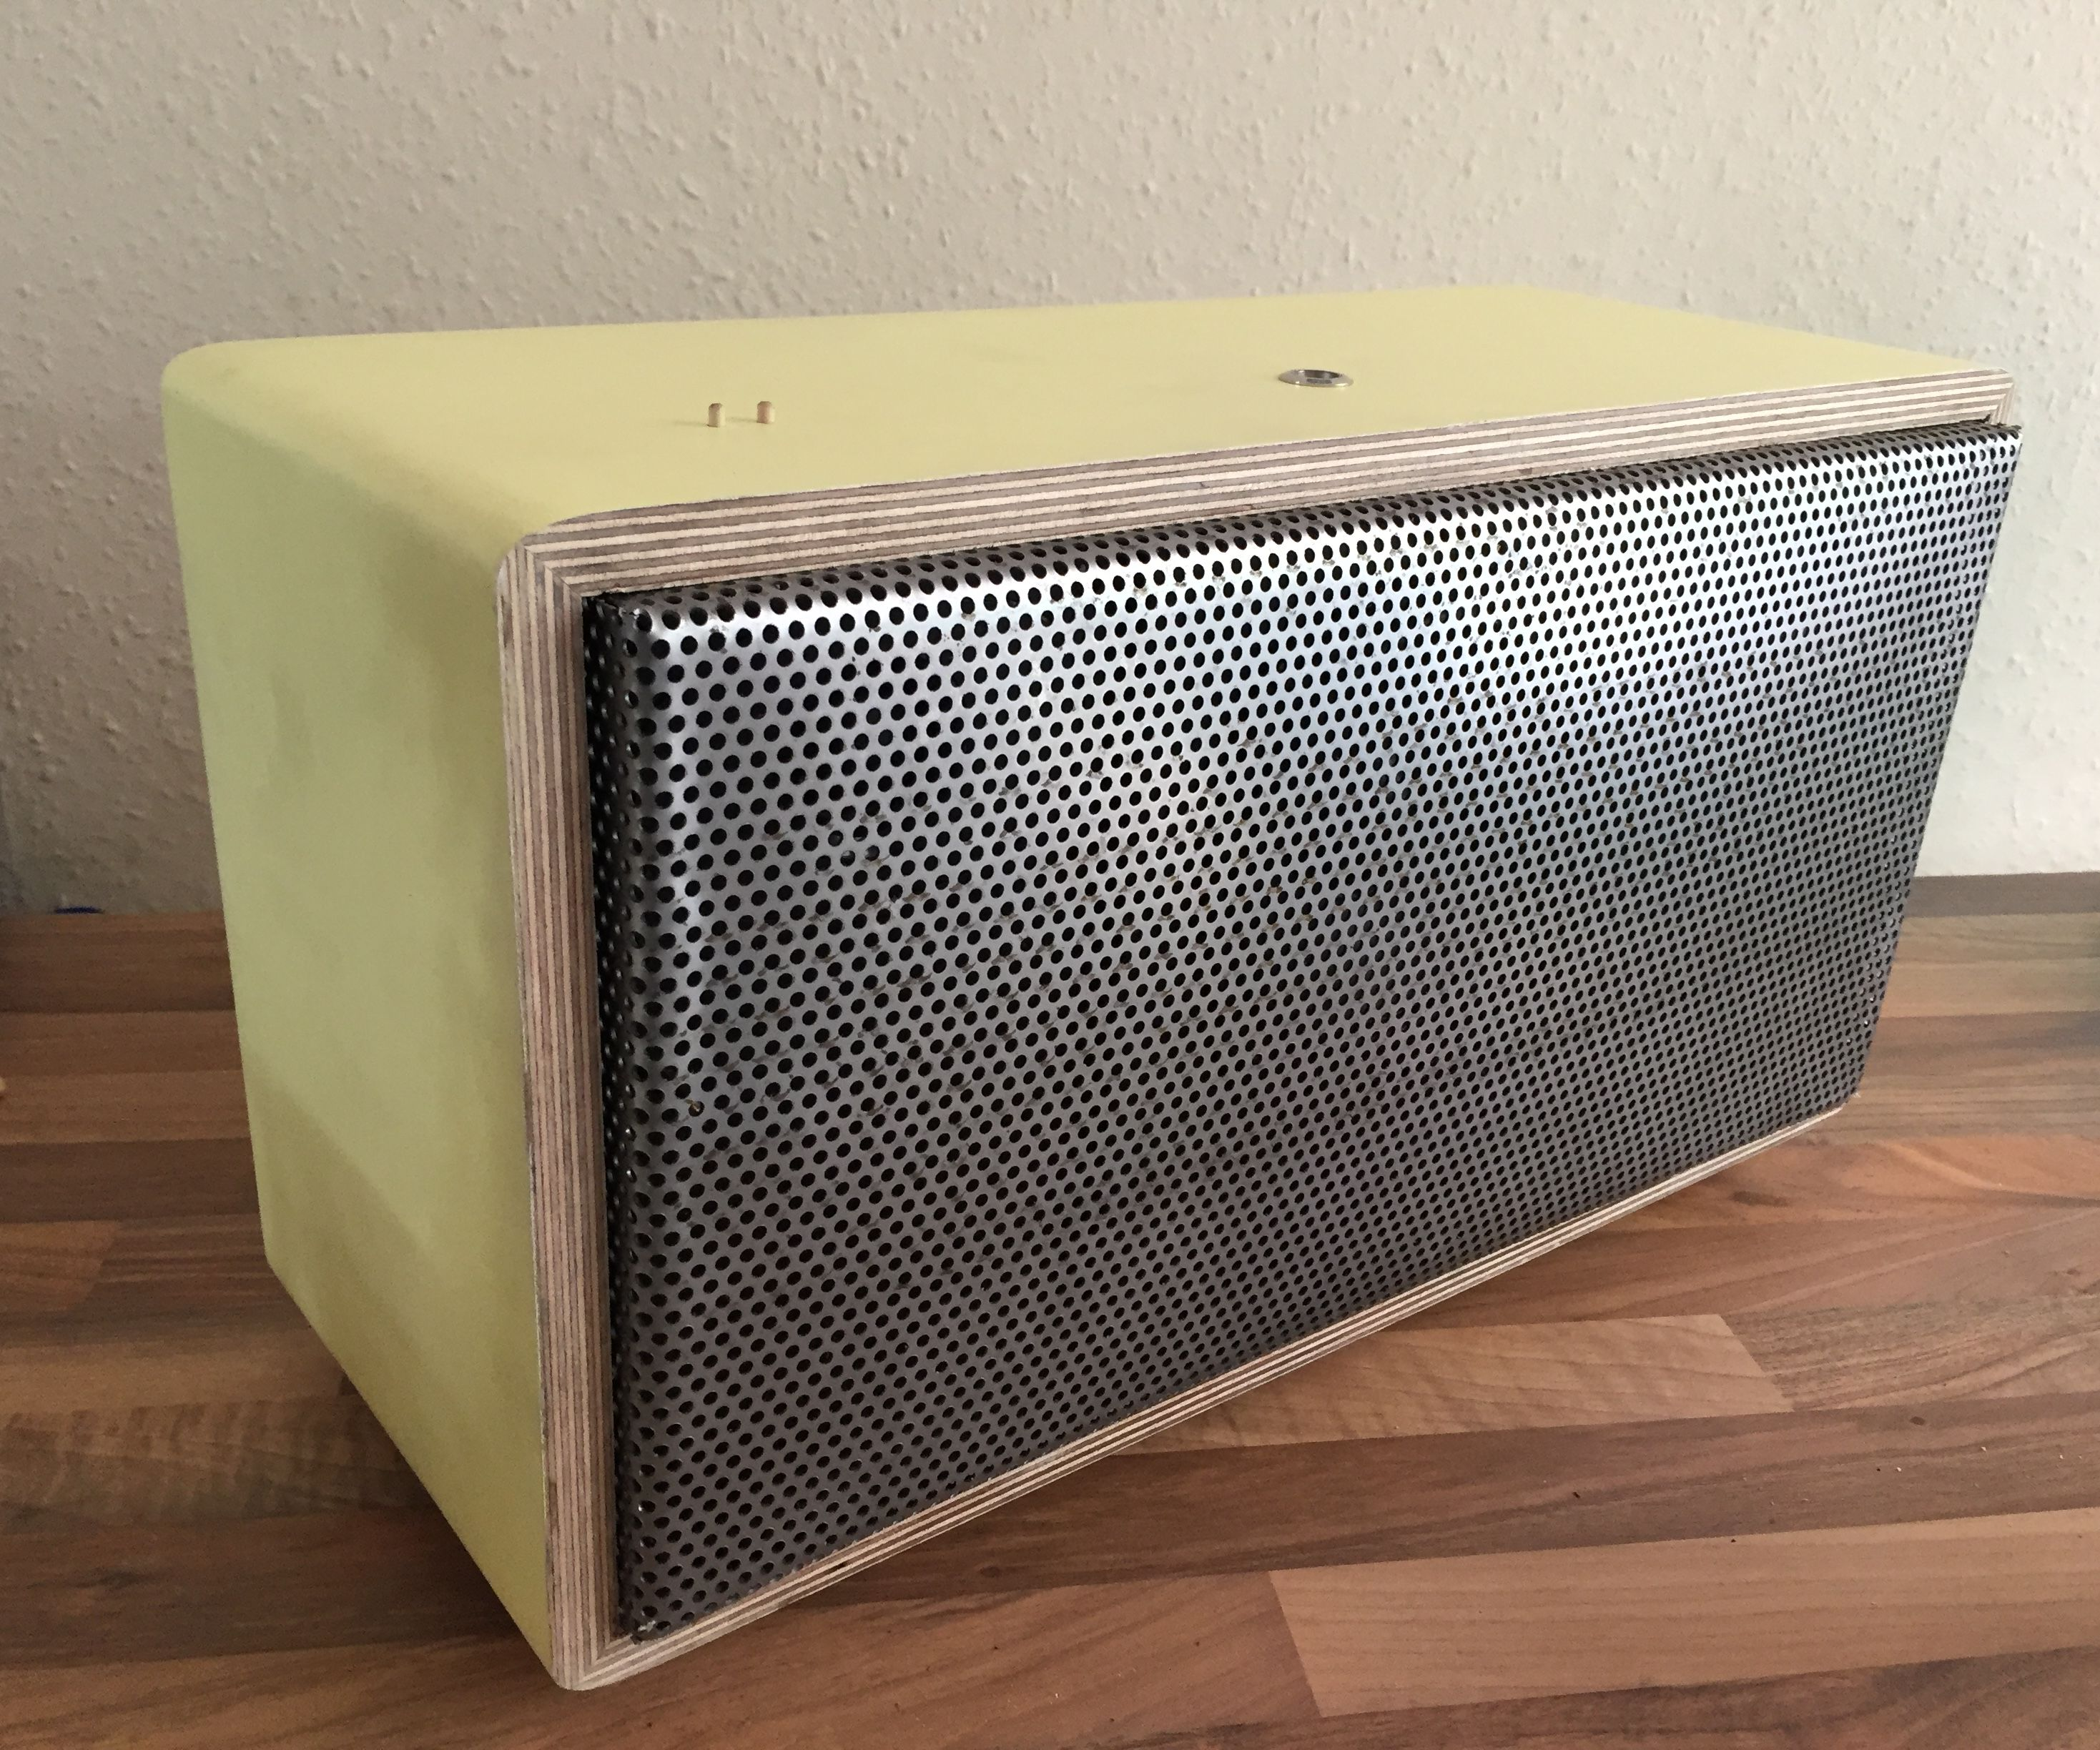 DIY Bluetooth Boombox - Repurpose your old Hi-Fi